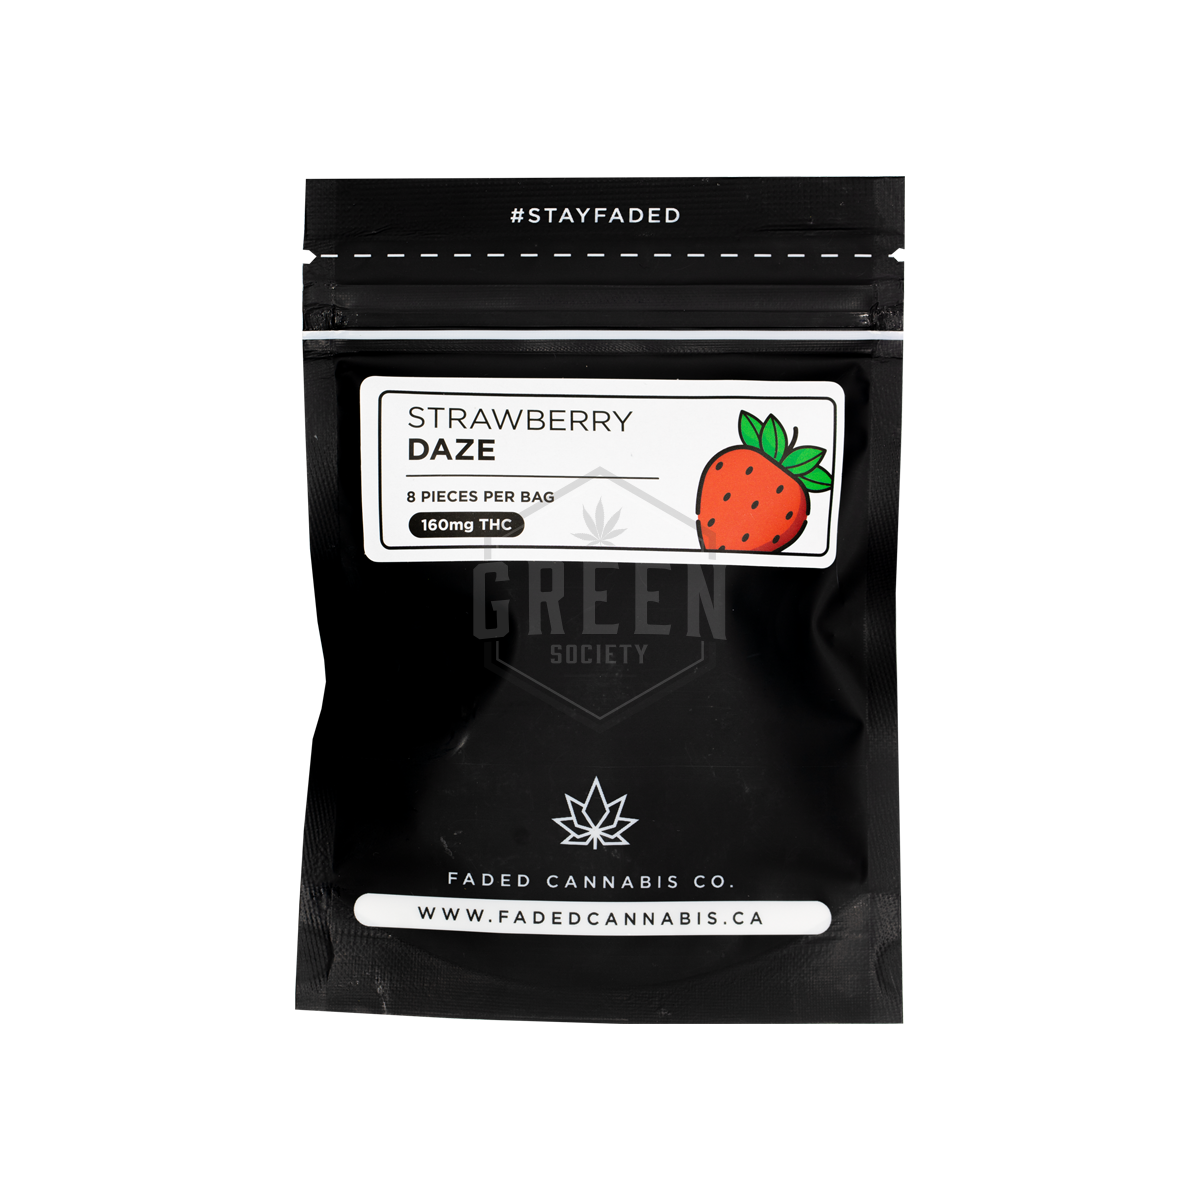 Faded Cannabis Co. Strawberry Daze Gummies by Green Society - Image © 2020 Green Society. All Rights Reserved.